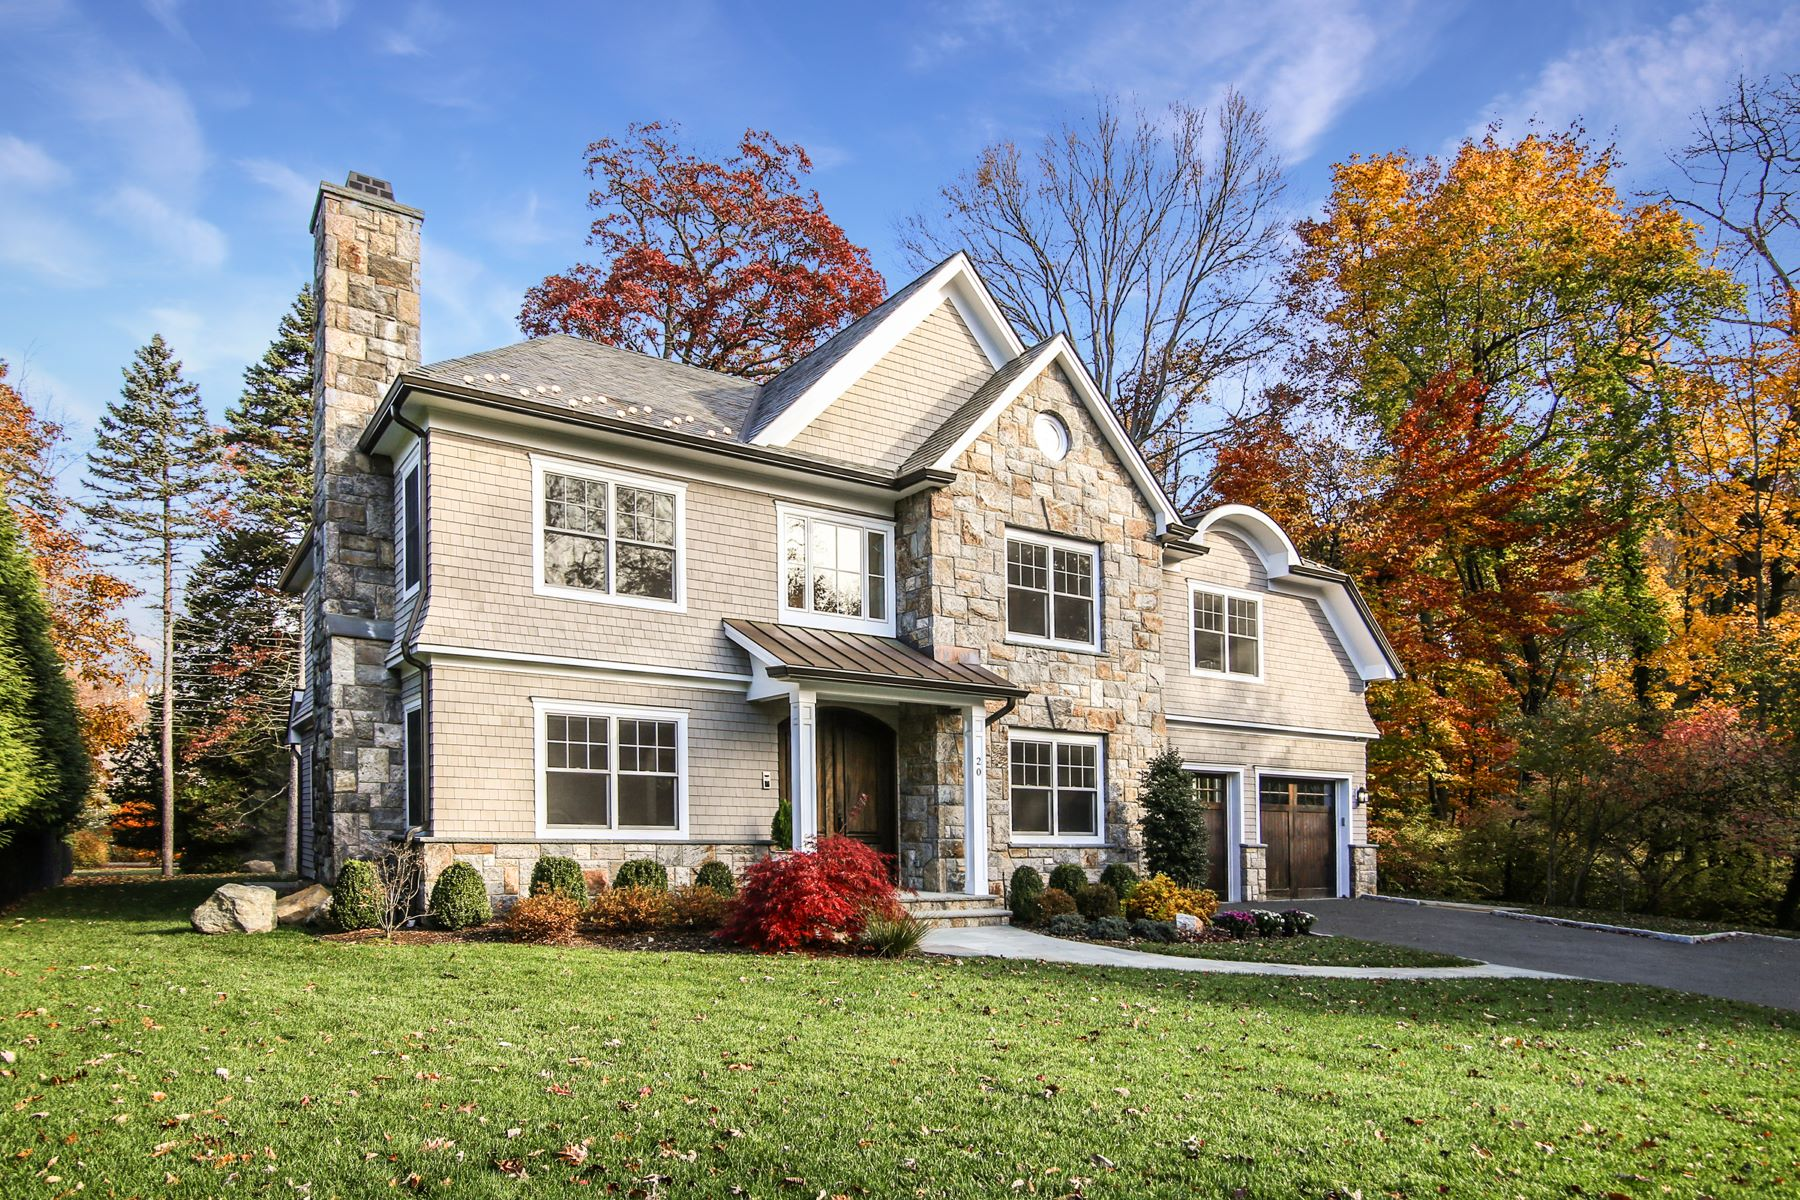 Single Family Homes for Sale at Gorgeous Sherbrooke Park Colonial 20 Brookline Road Scarsdale, New York 10583 United States